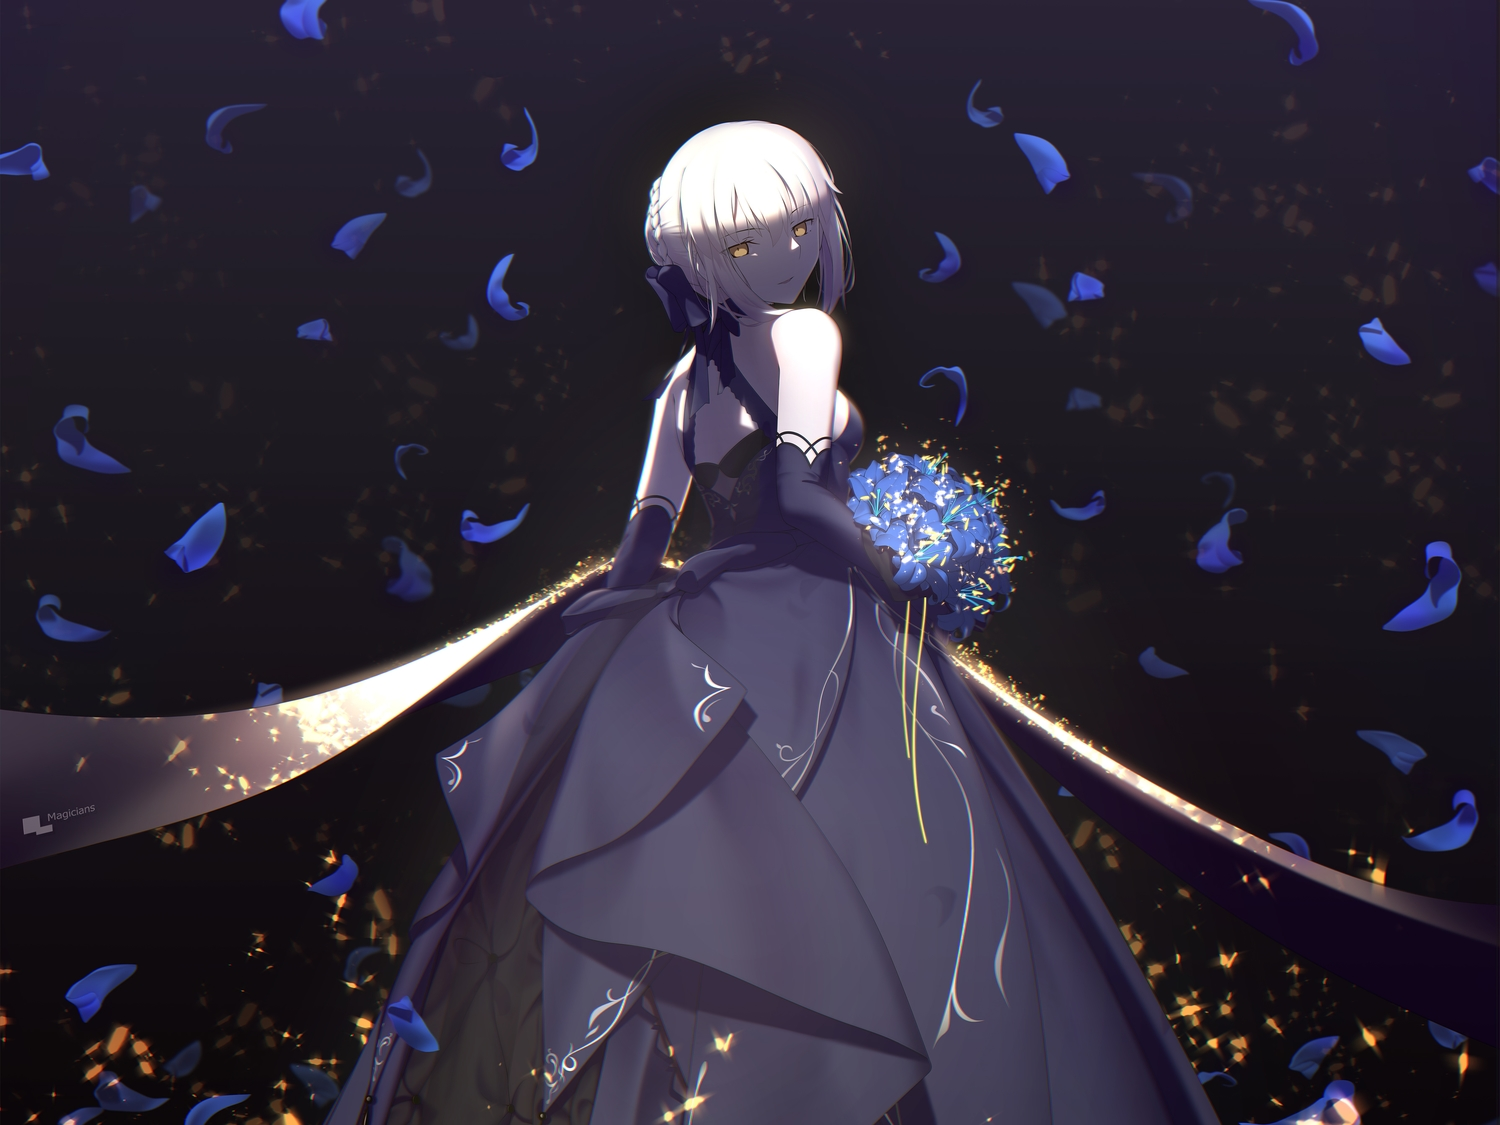 artoria_pendragon_(all) blonde_hair cropped dress elbow_gloves fate/grand_order fate_(series) flowers gloves magicians petals saber saber_alter short_hair yellow_eyes